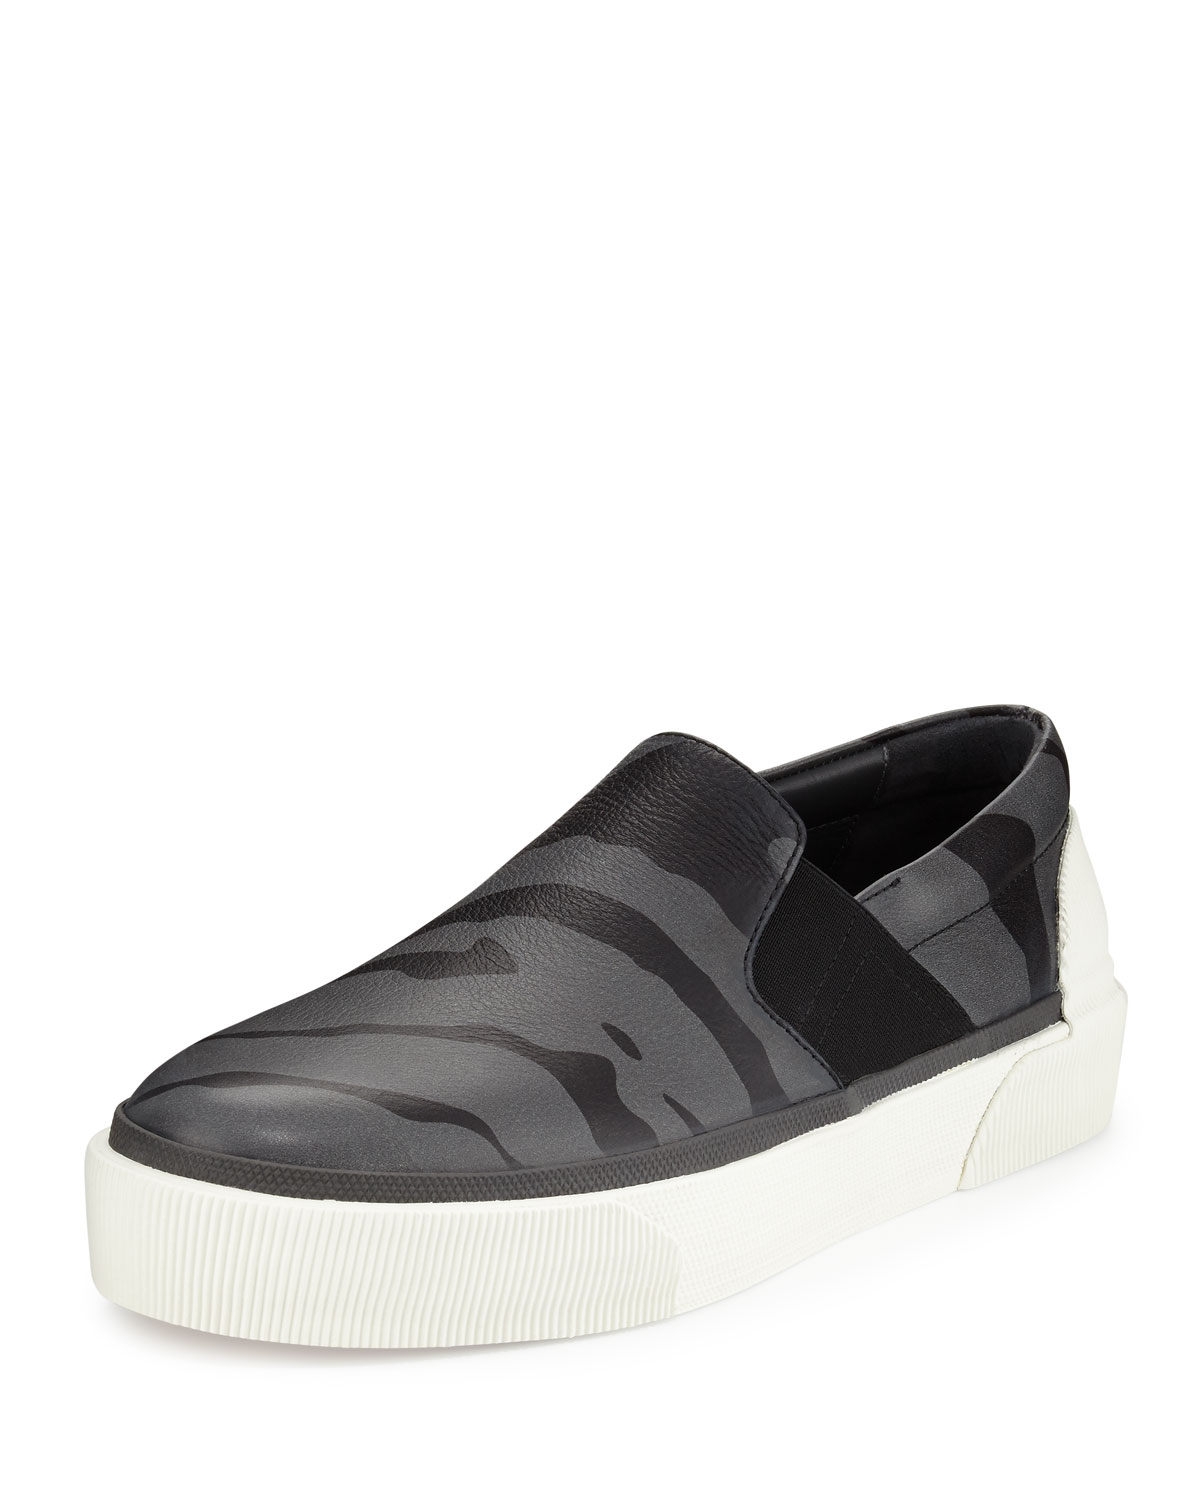 LanvinTiger slip-on sneakers